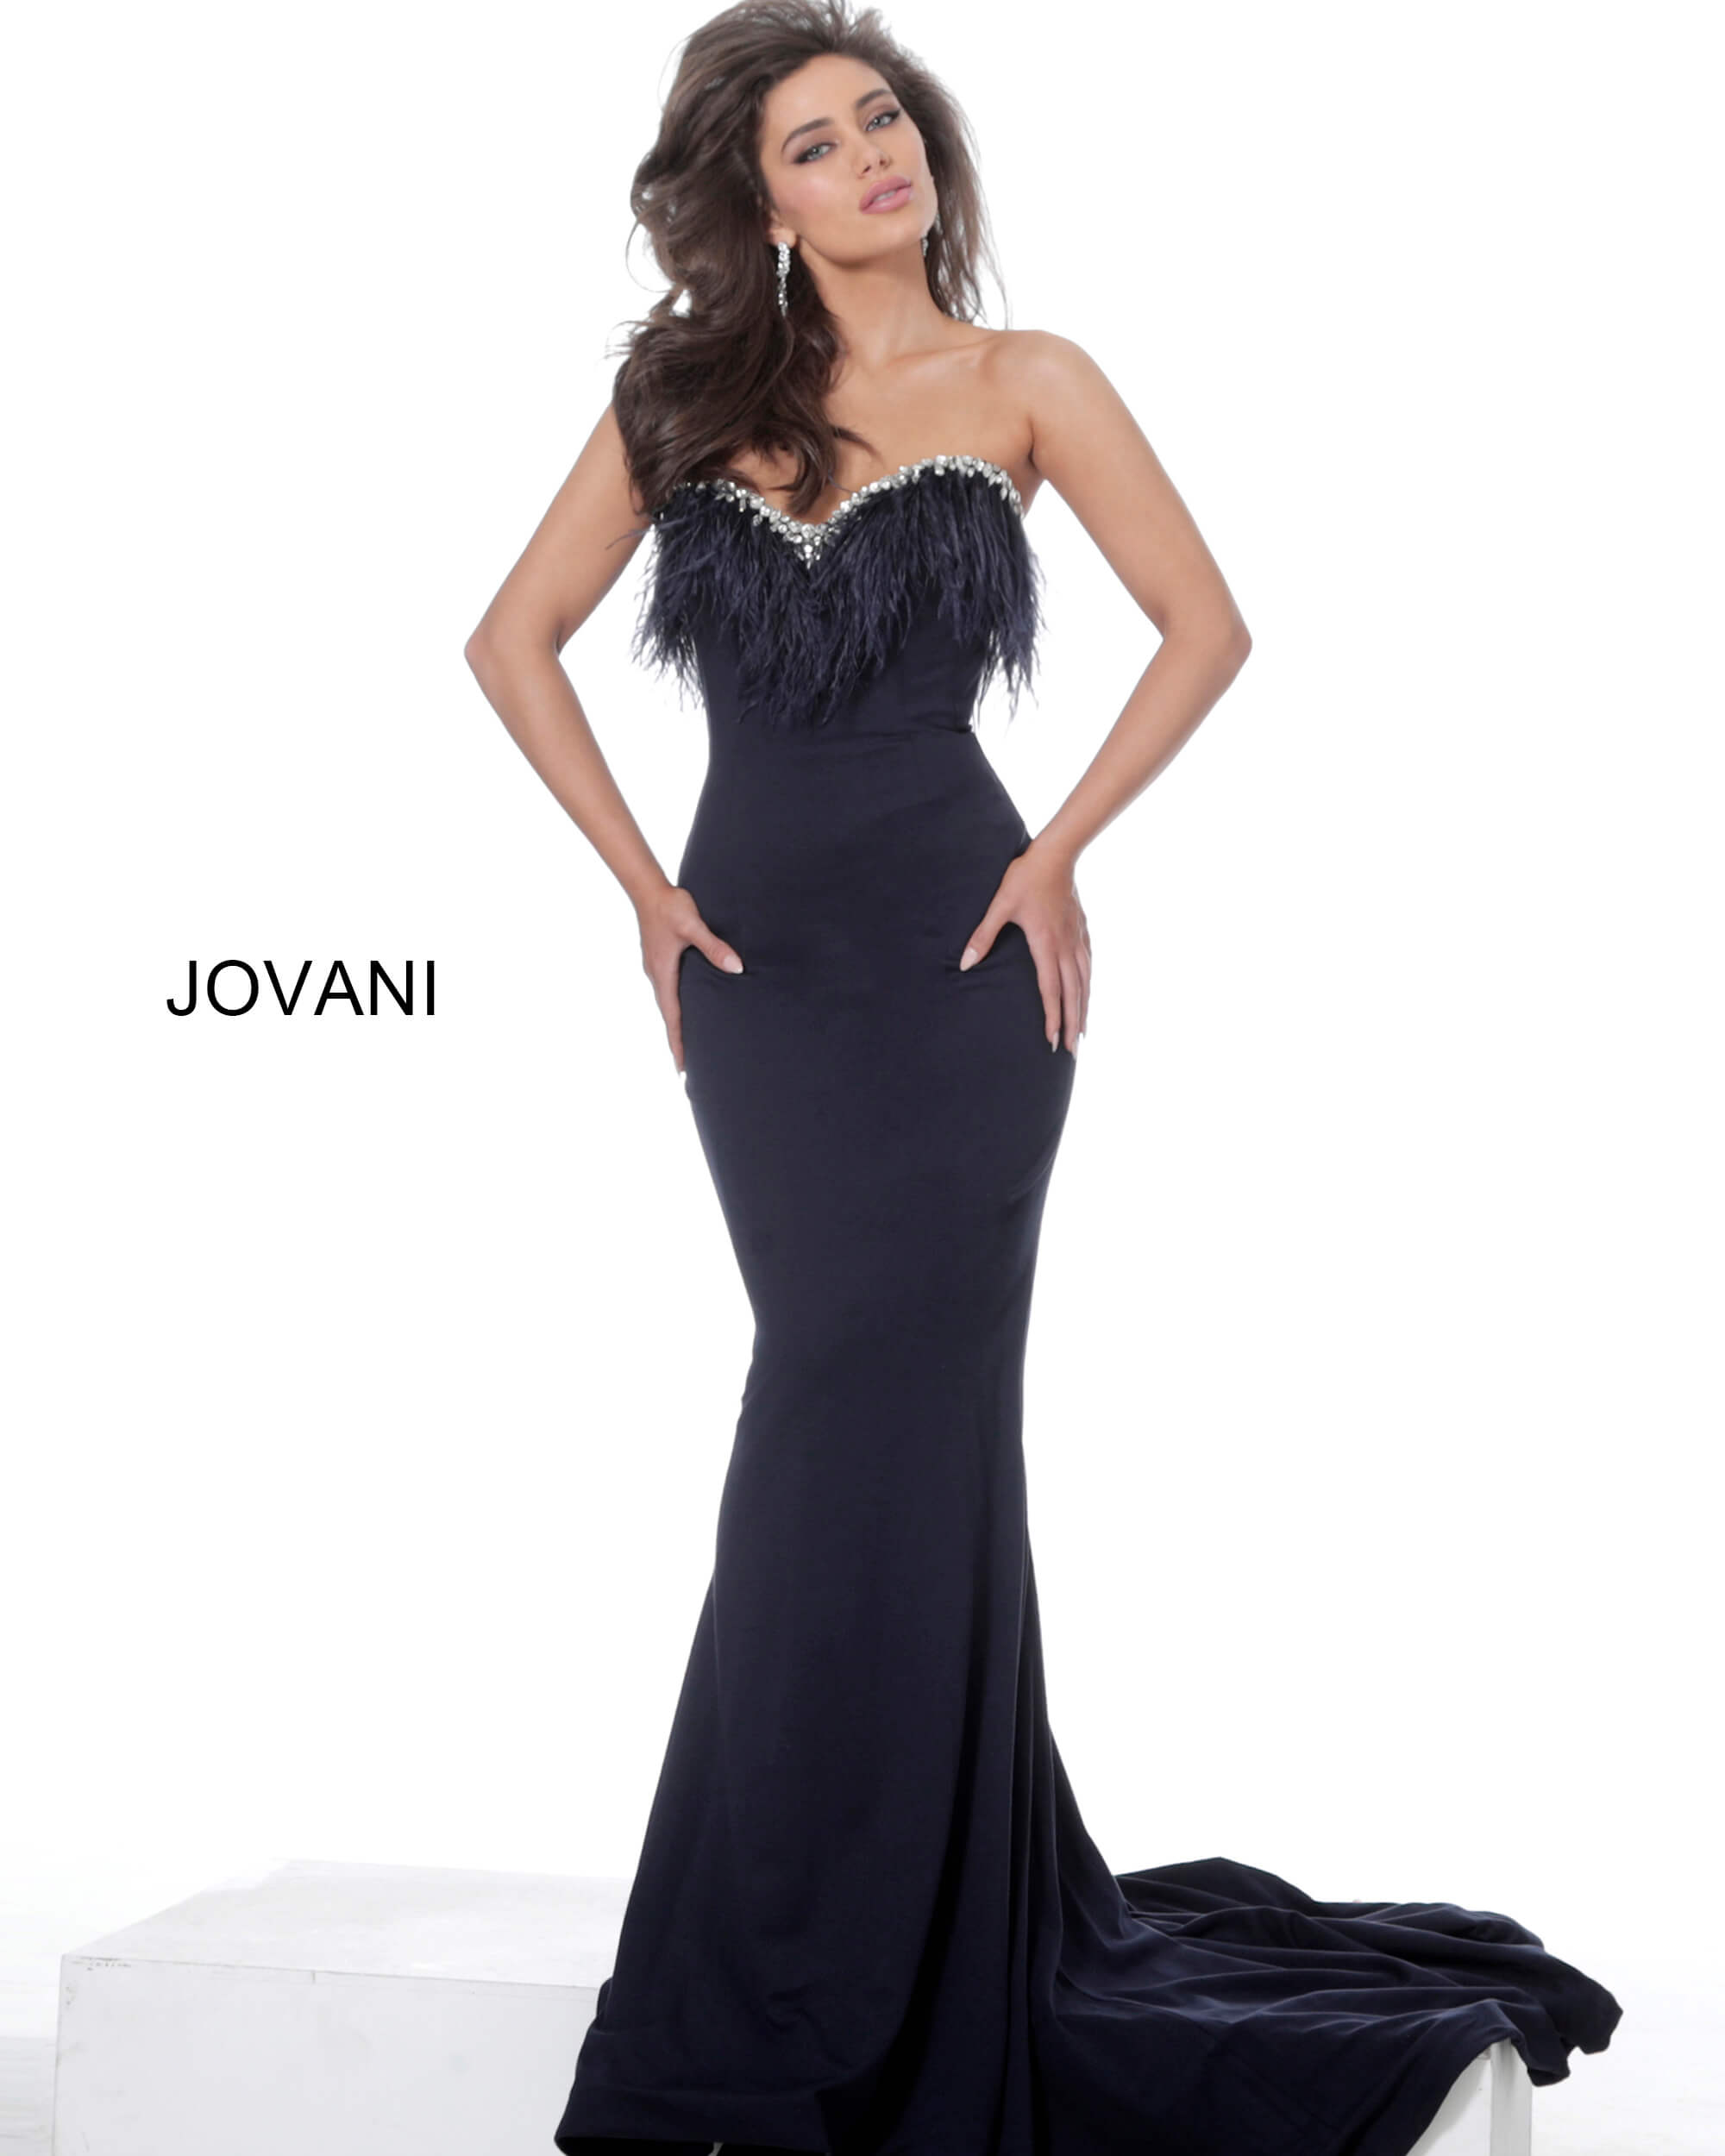 Jovani 63892 sweetheart long dress